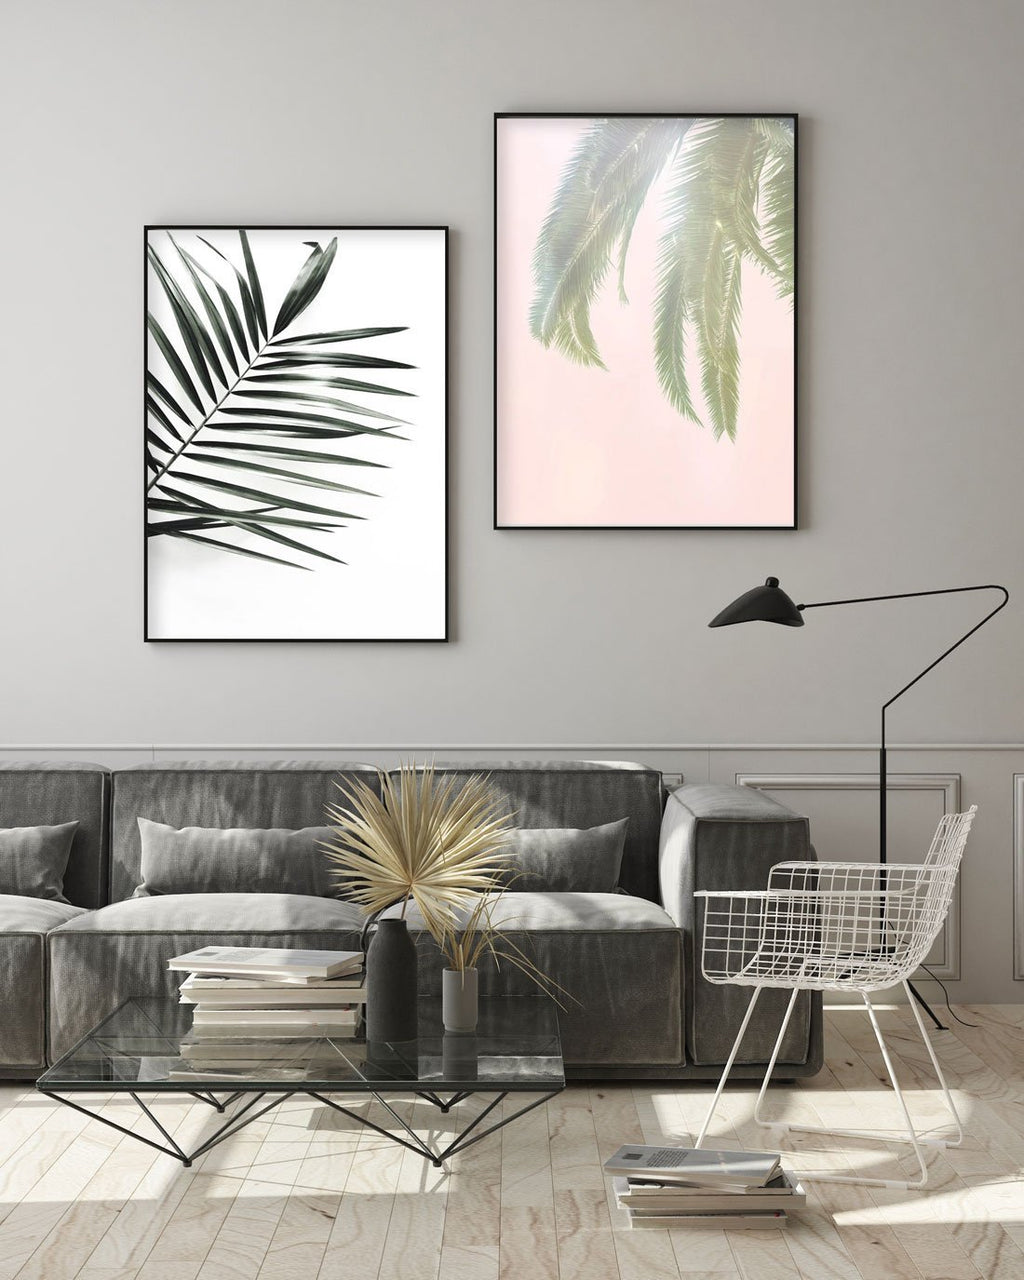 Dreamy Palms No 1 - Olive et Oriel